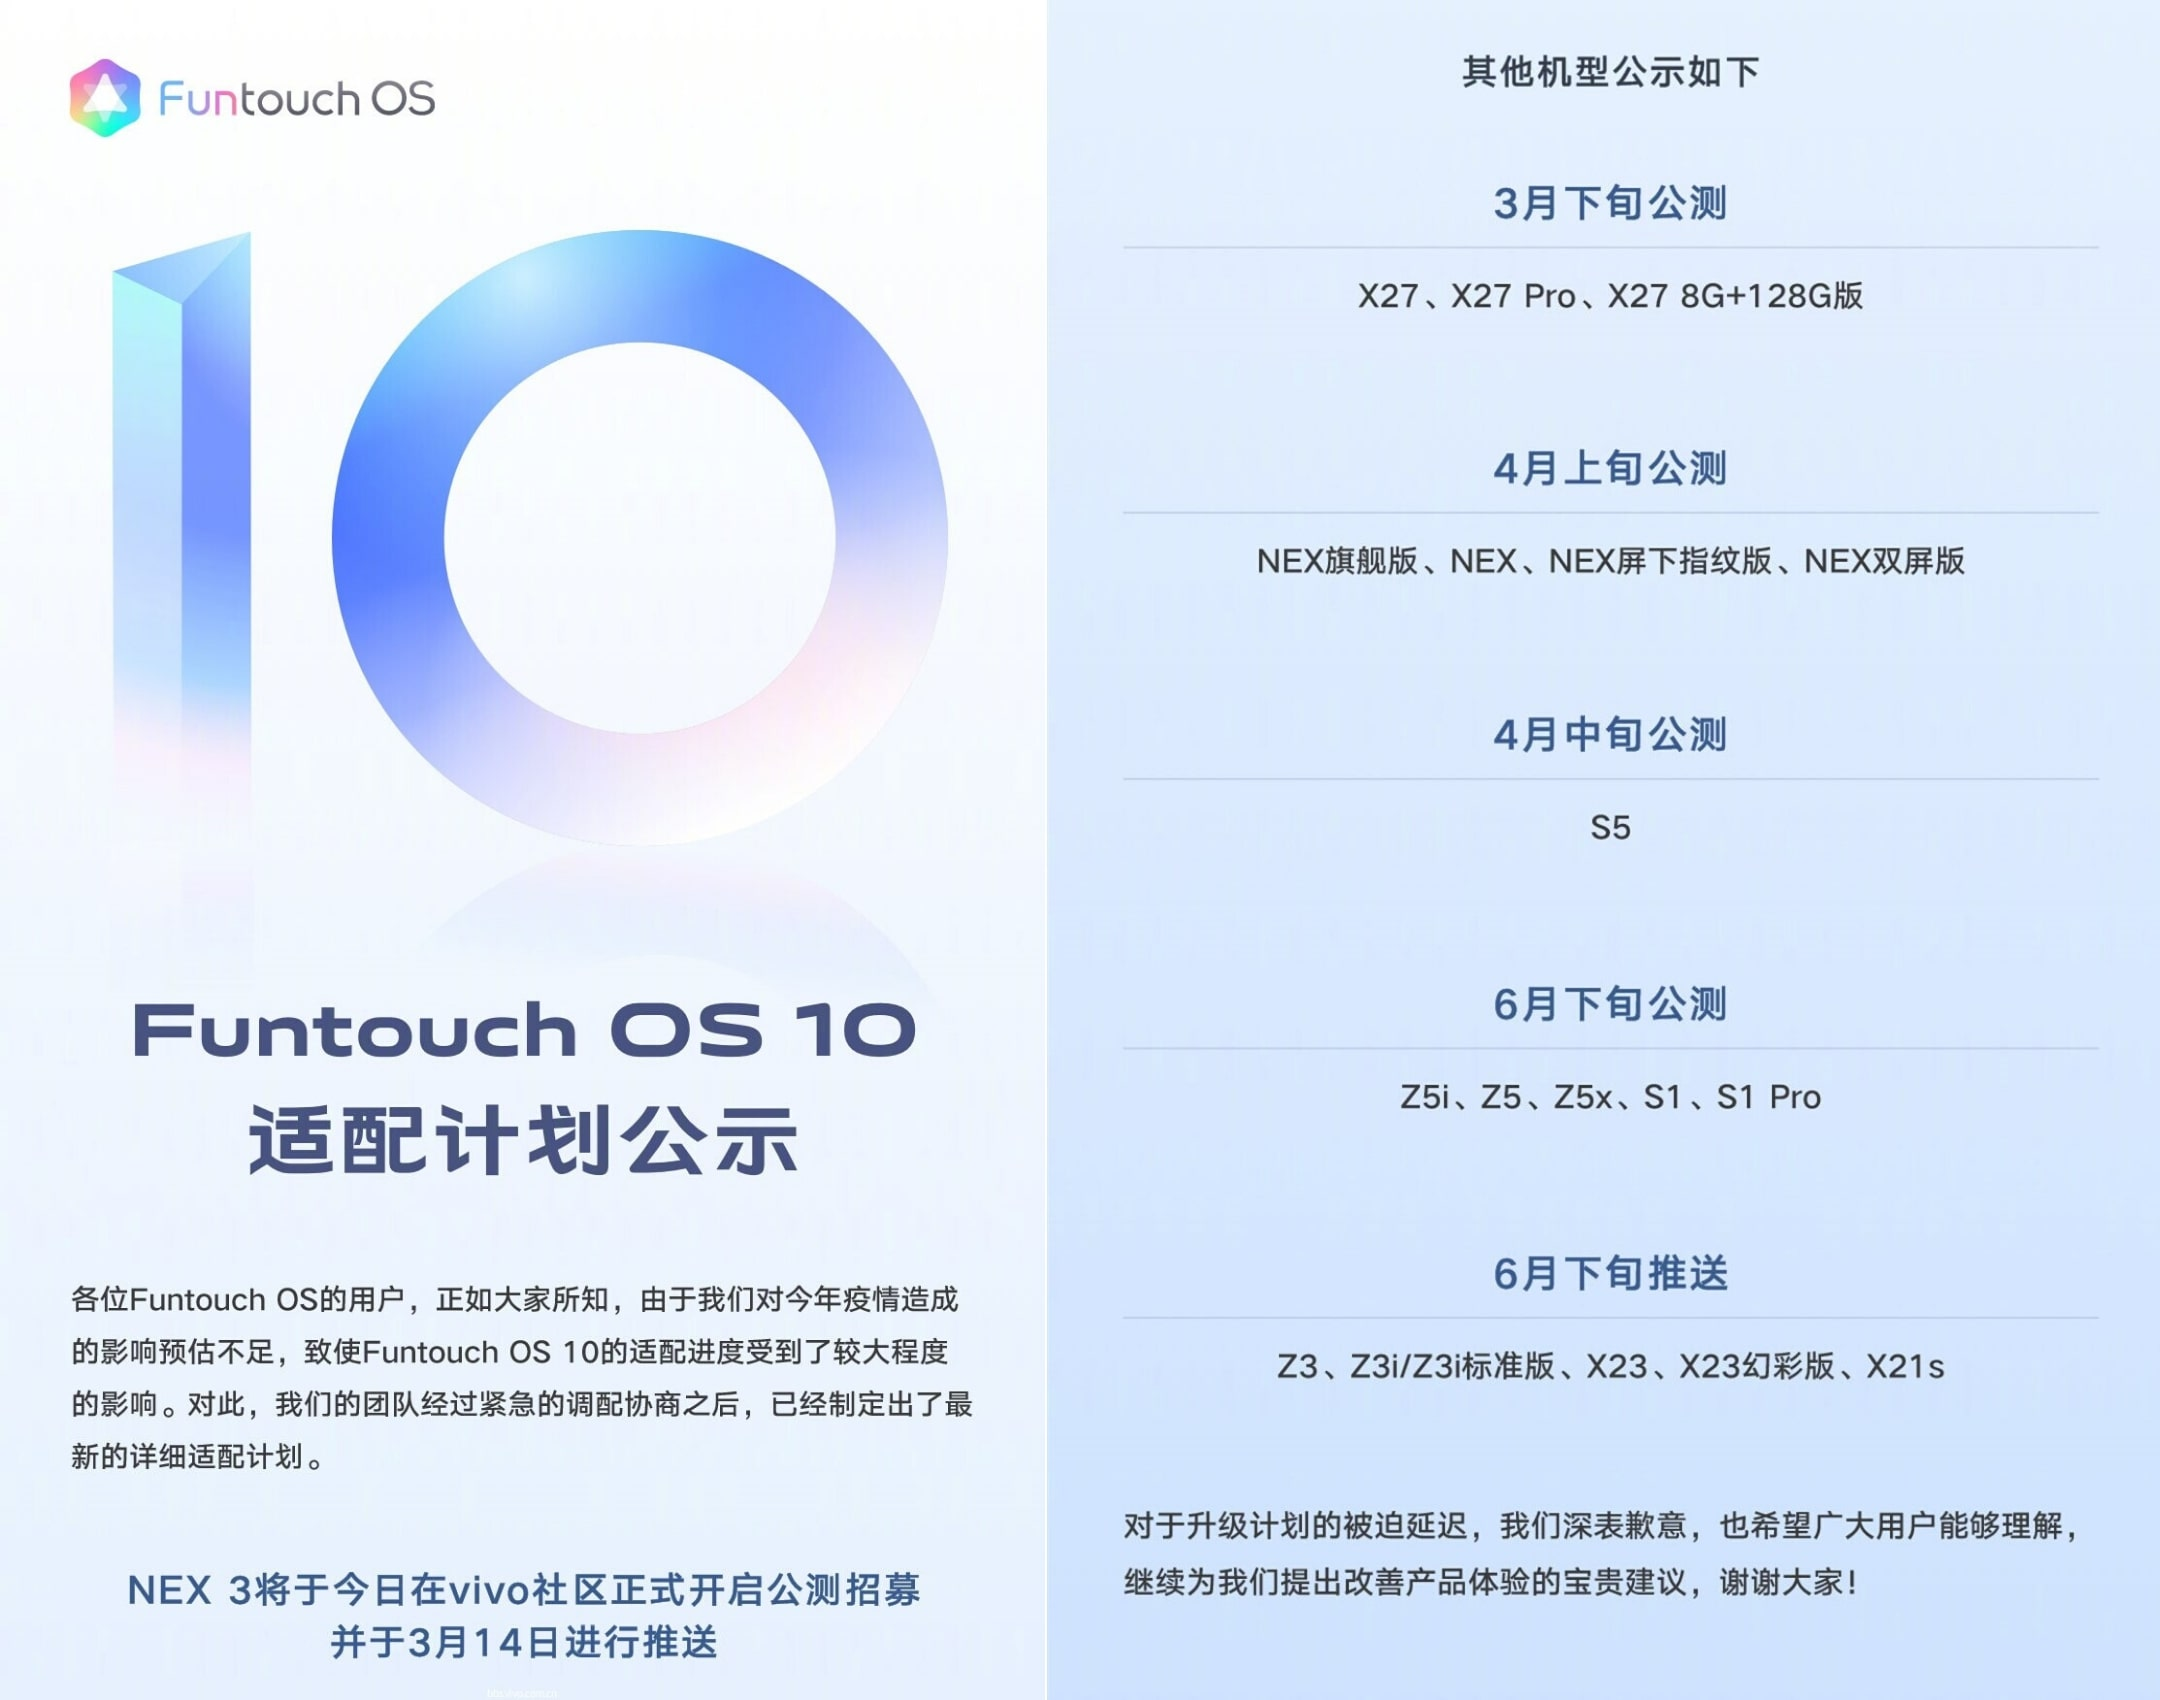 Vivo roadmap for android 10